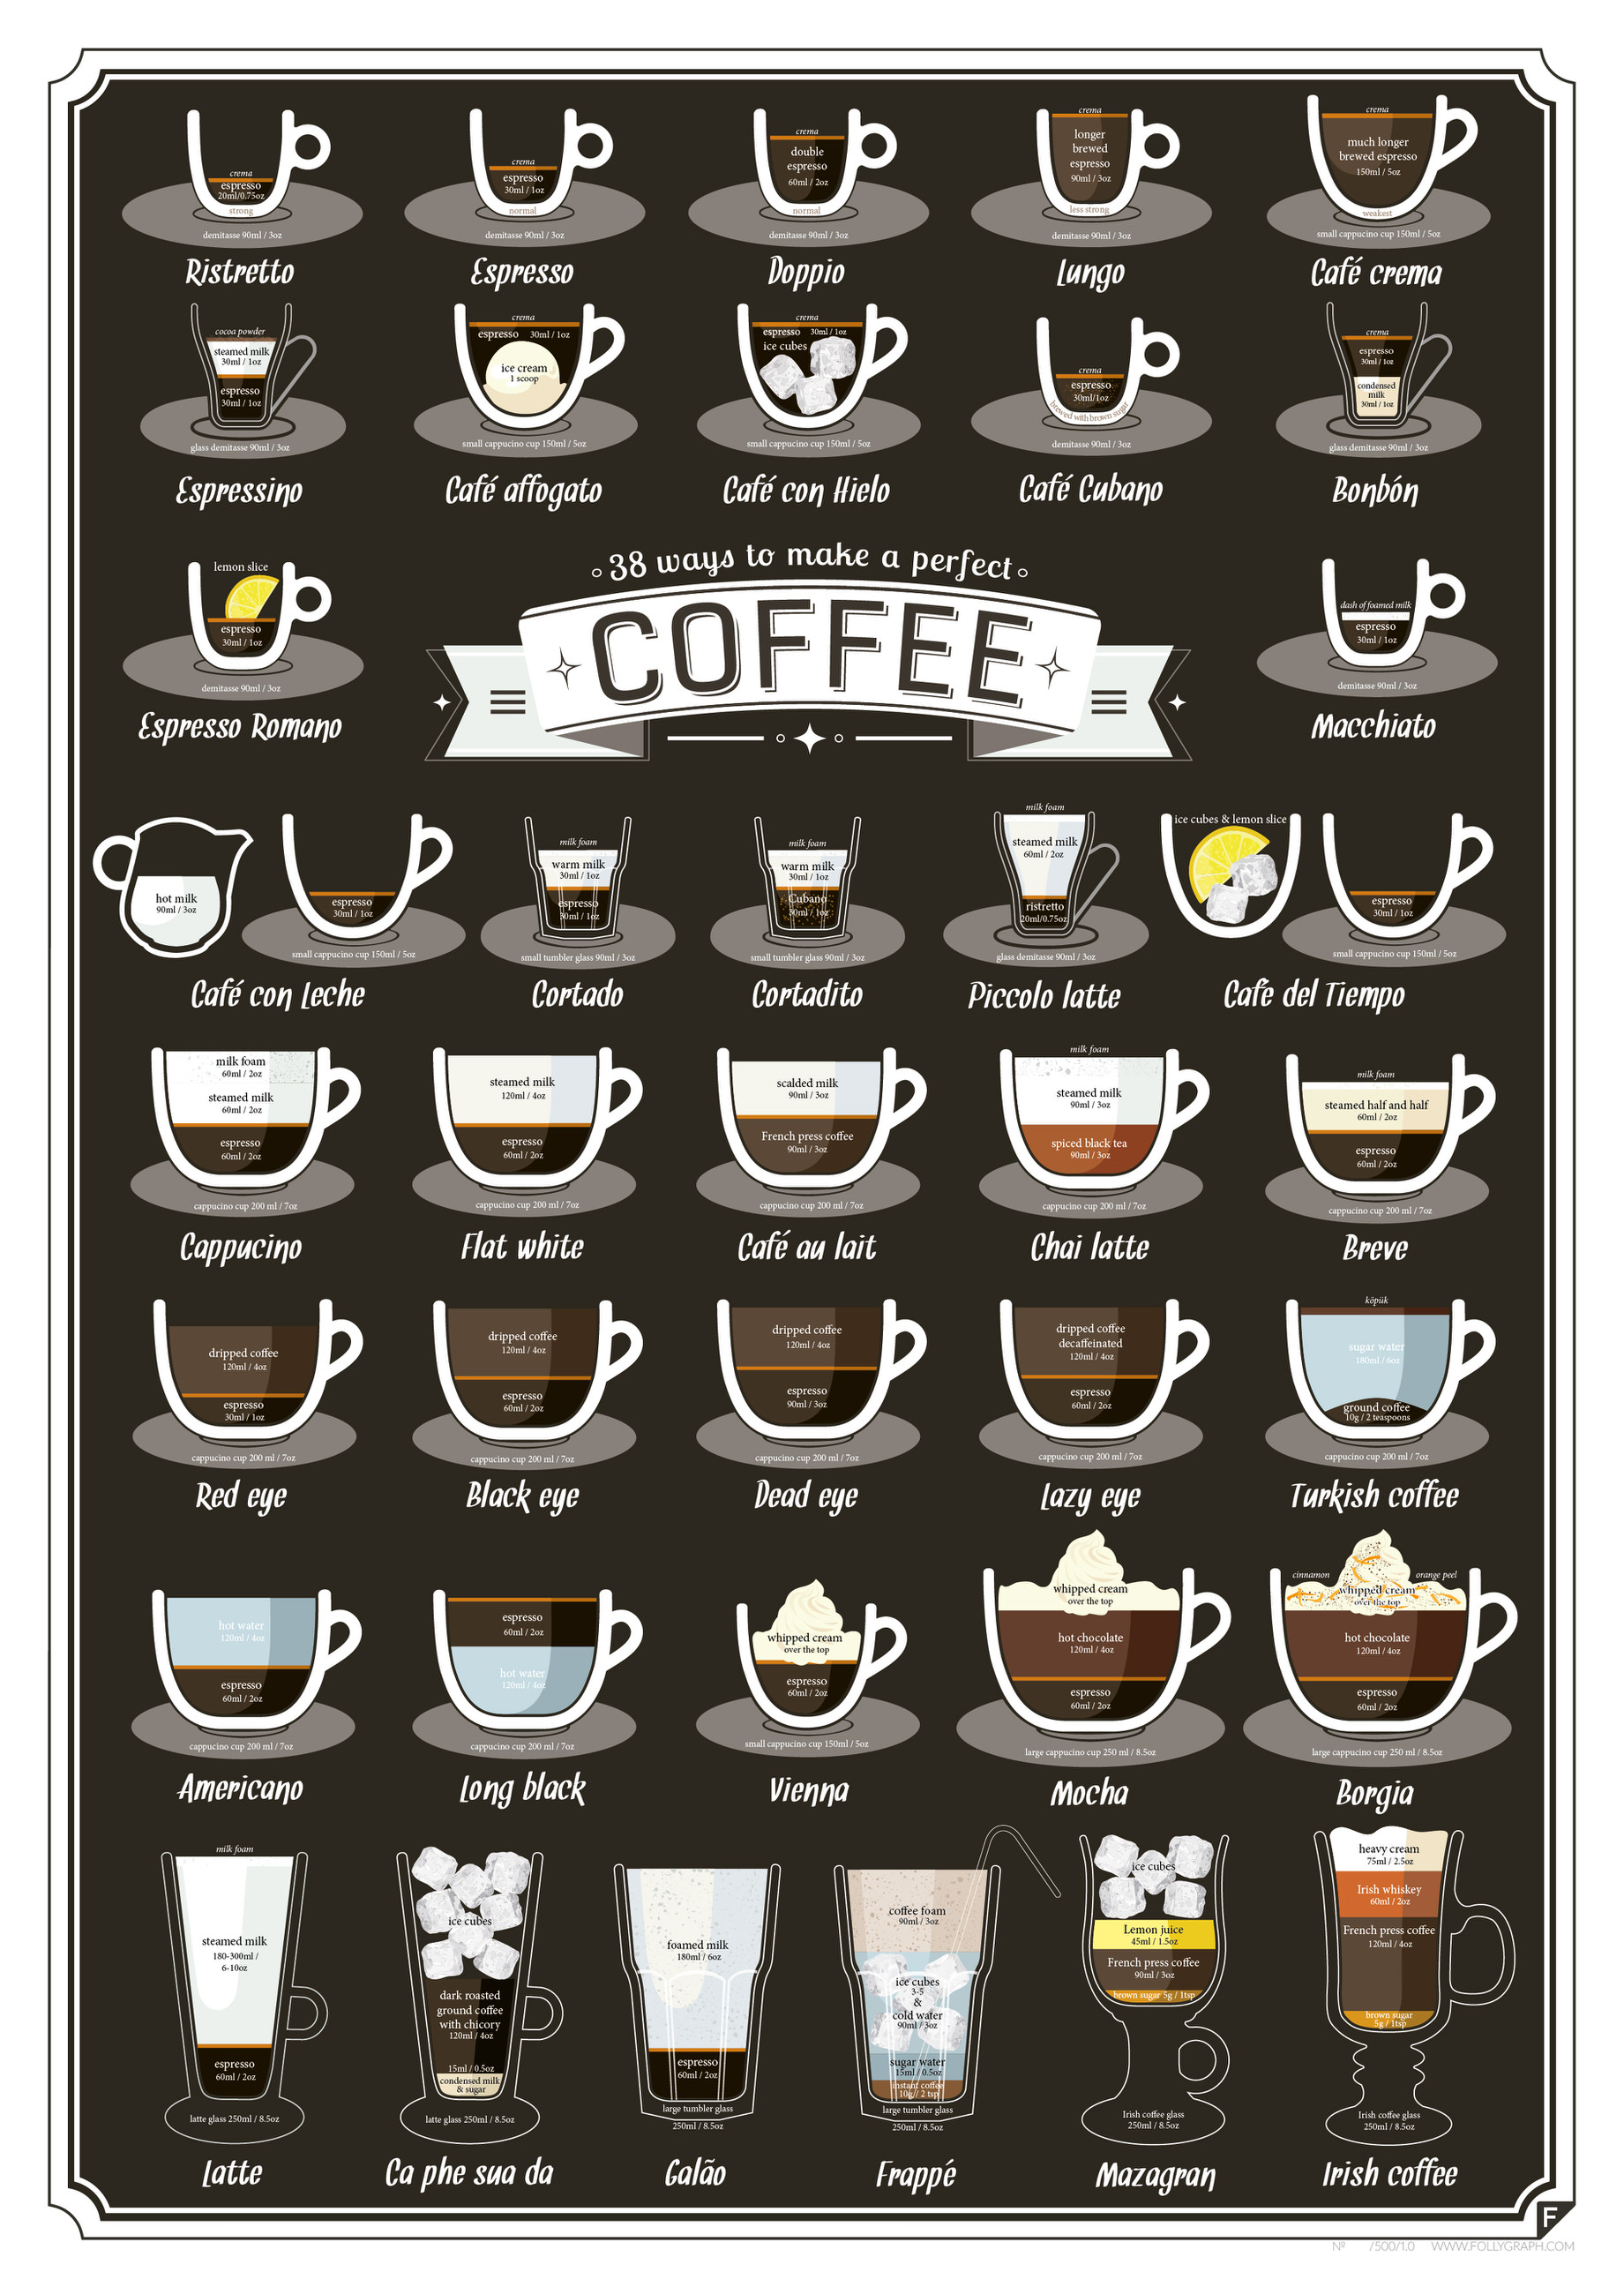 Infographic, various ways coffee and espresso can be served.